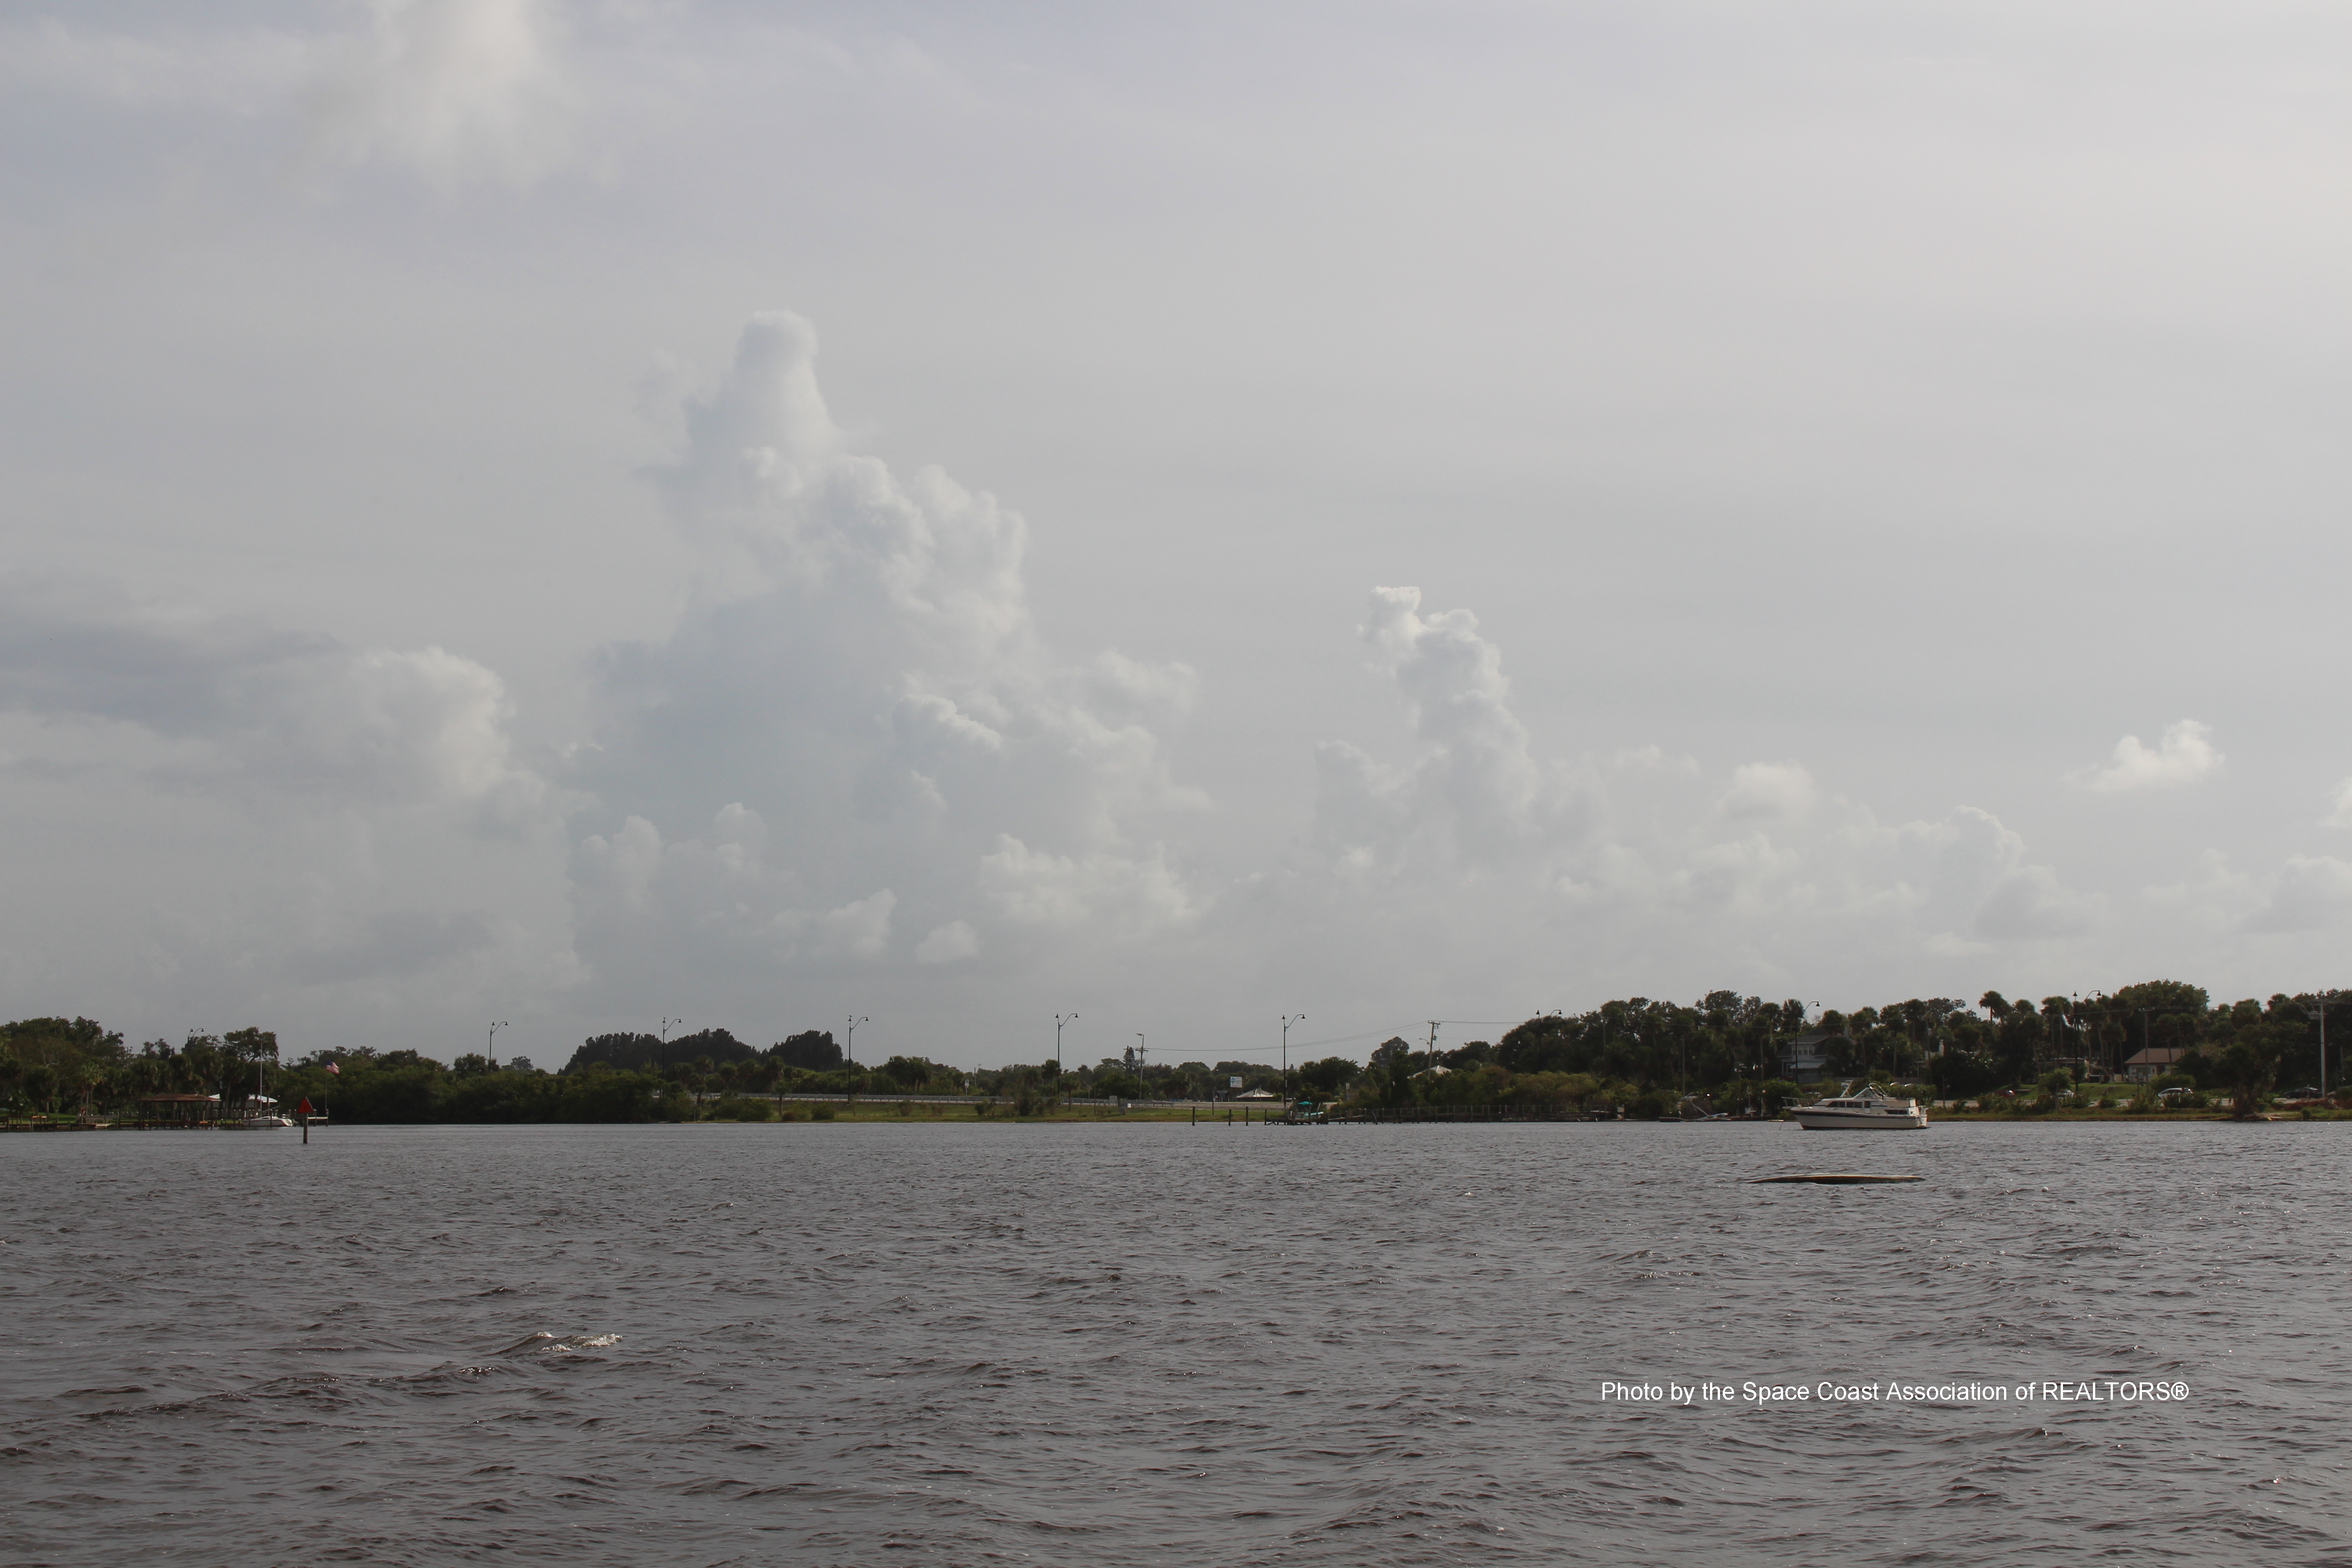 Boat in water in Palm Bay, Florida